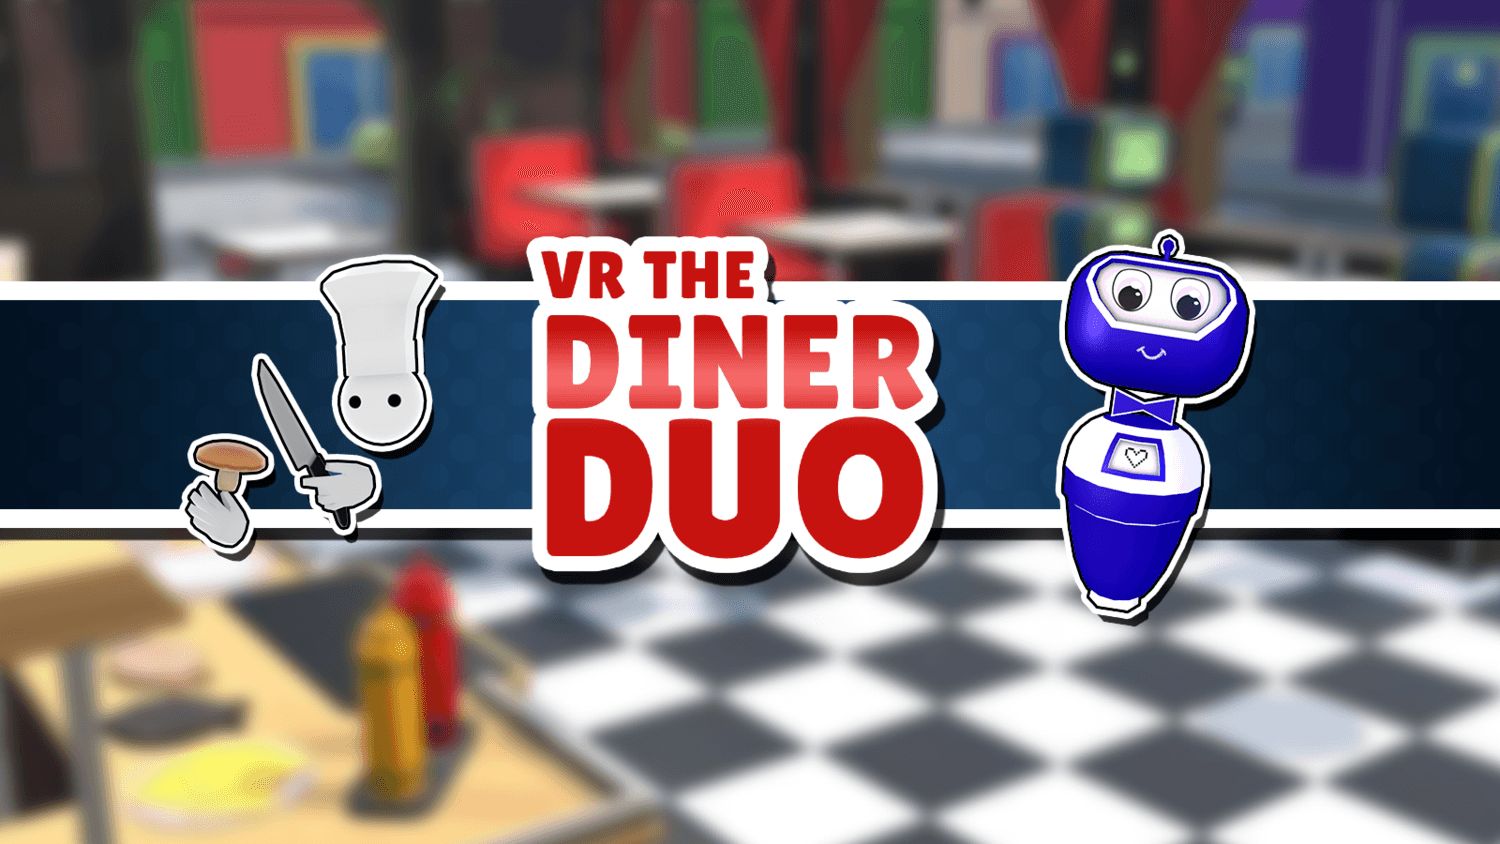 vr-the-diner-duo photo